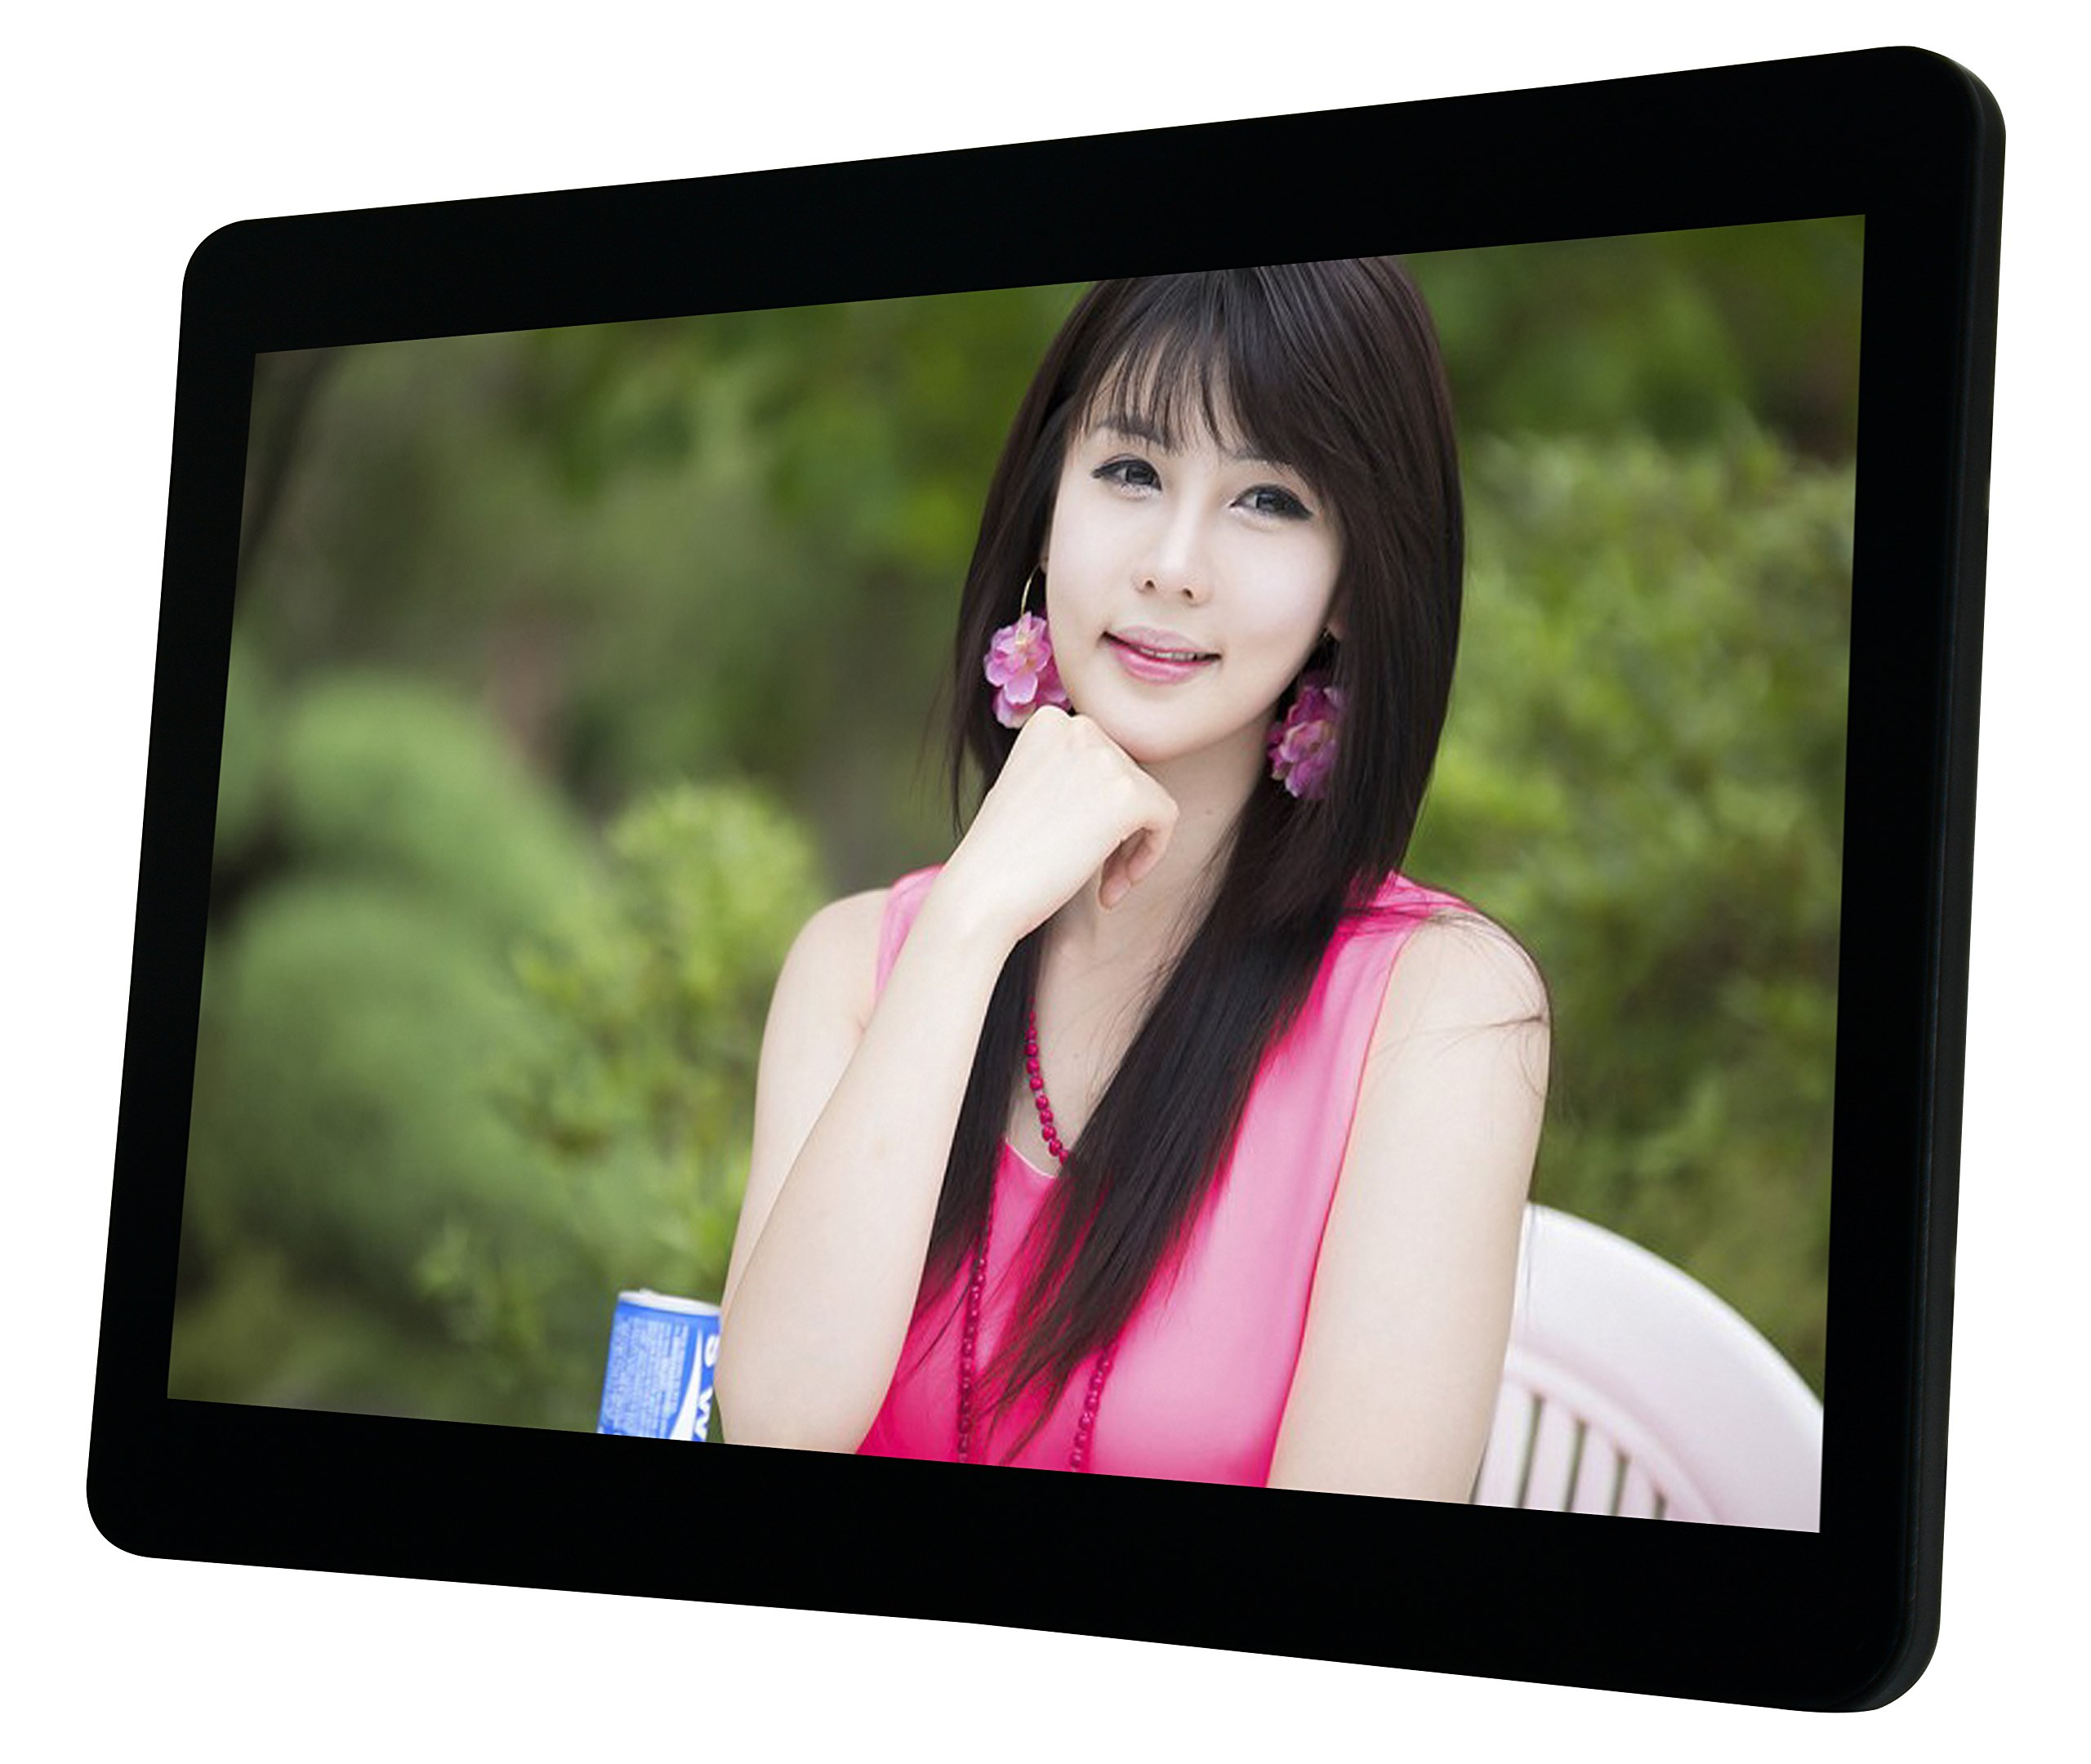 10'' HD LCD Screen Advertising Media Video Player - [Strong Metal Frame] - Compatible with SD card or USB 2.0 - Remote control Included by Playerman